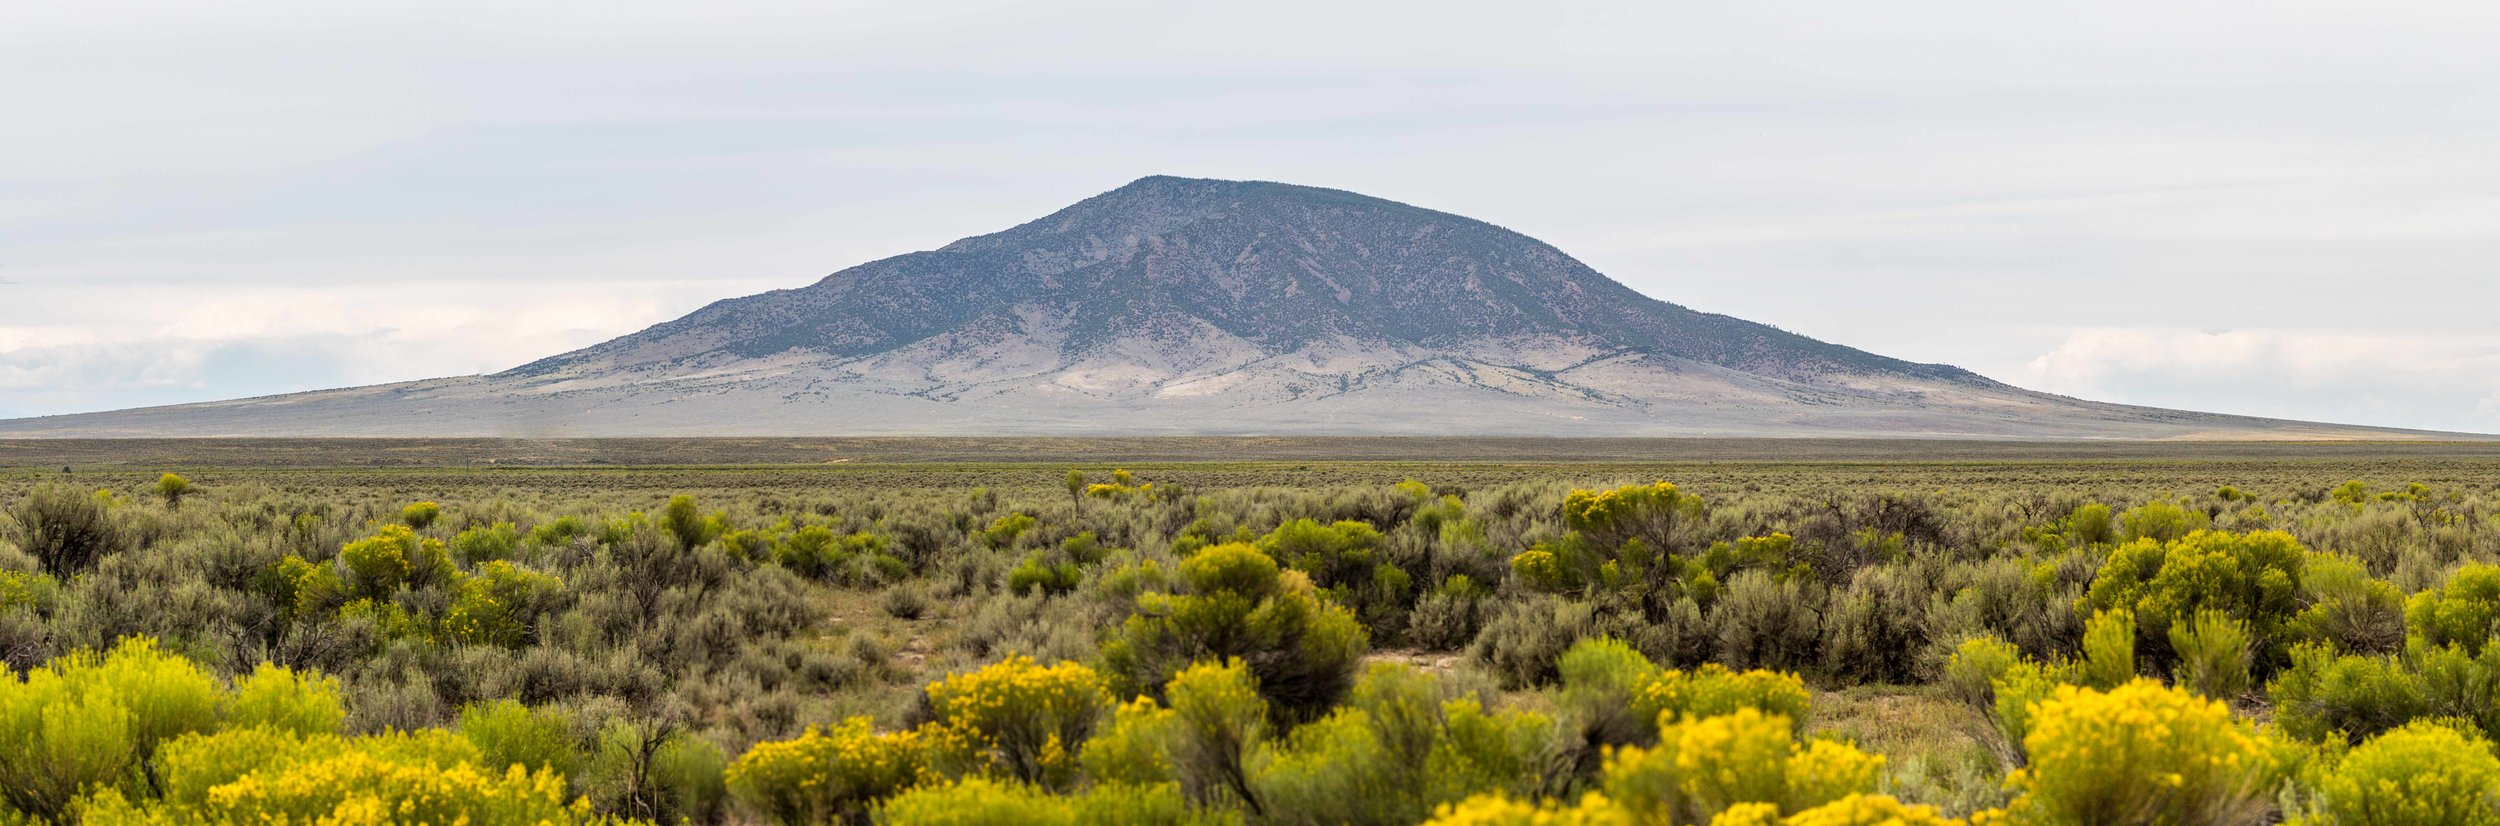 ute mountain rising from the taos plateau - Ute Mountain in Rio Grande del Norte National Monument. This 10,093 foot peak stands alone above the sagebrush along the northern border of New Mexico, providing views of the Rio Grande Gorge below. It is the highest point within New Mexico's BLM lands.